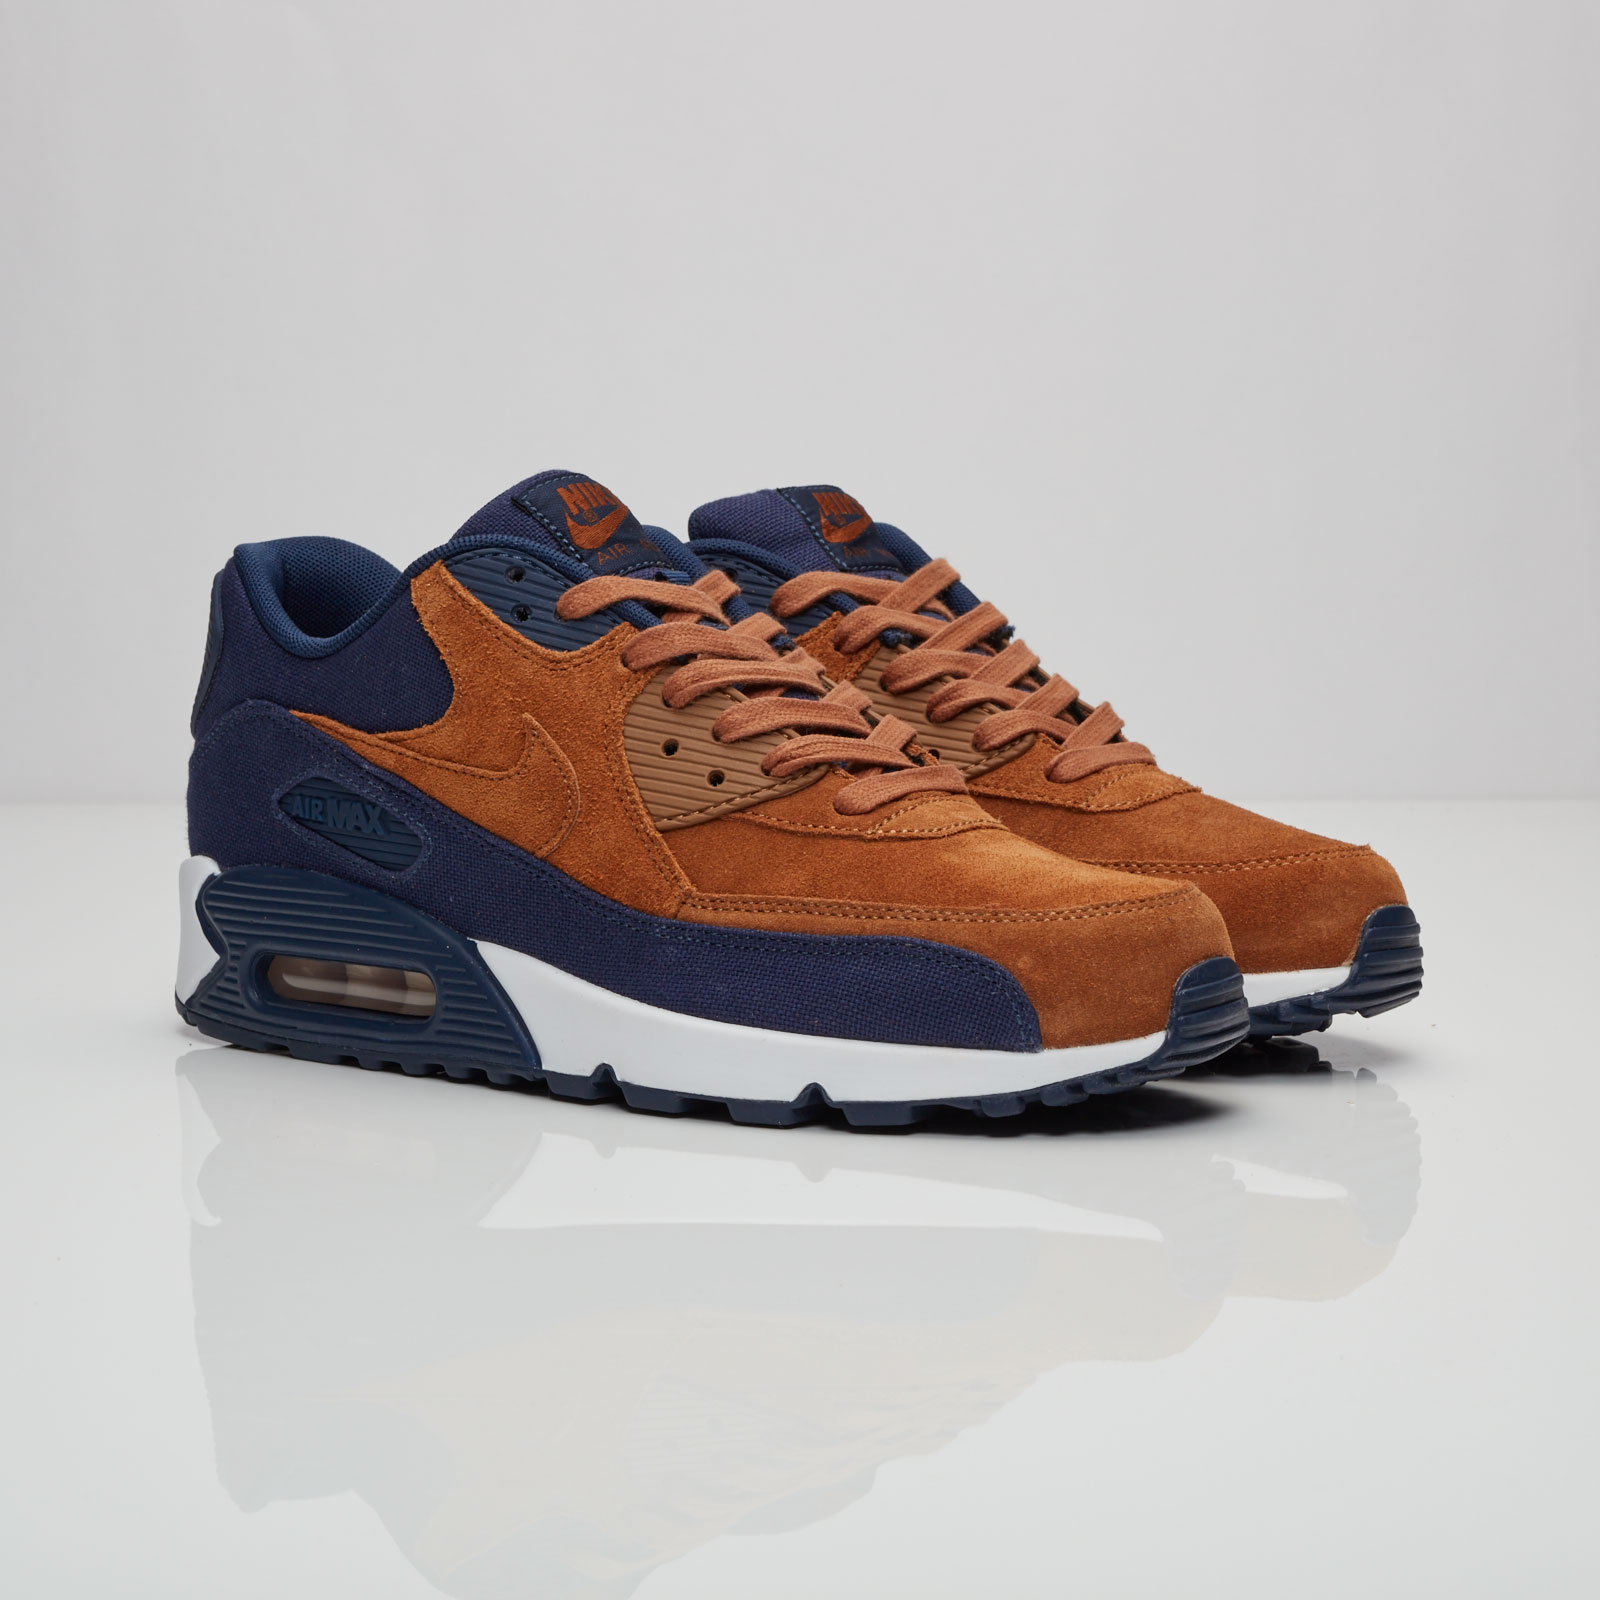 reputable site 5021b e438f Nike Air Max 90 Premium - 700155-201 - Sneakersnstuff ...